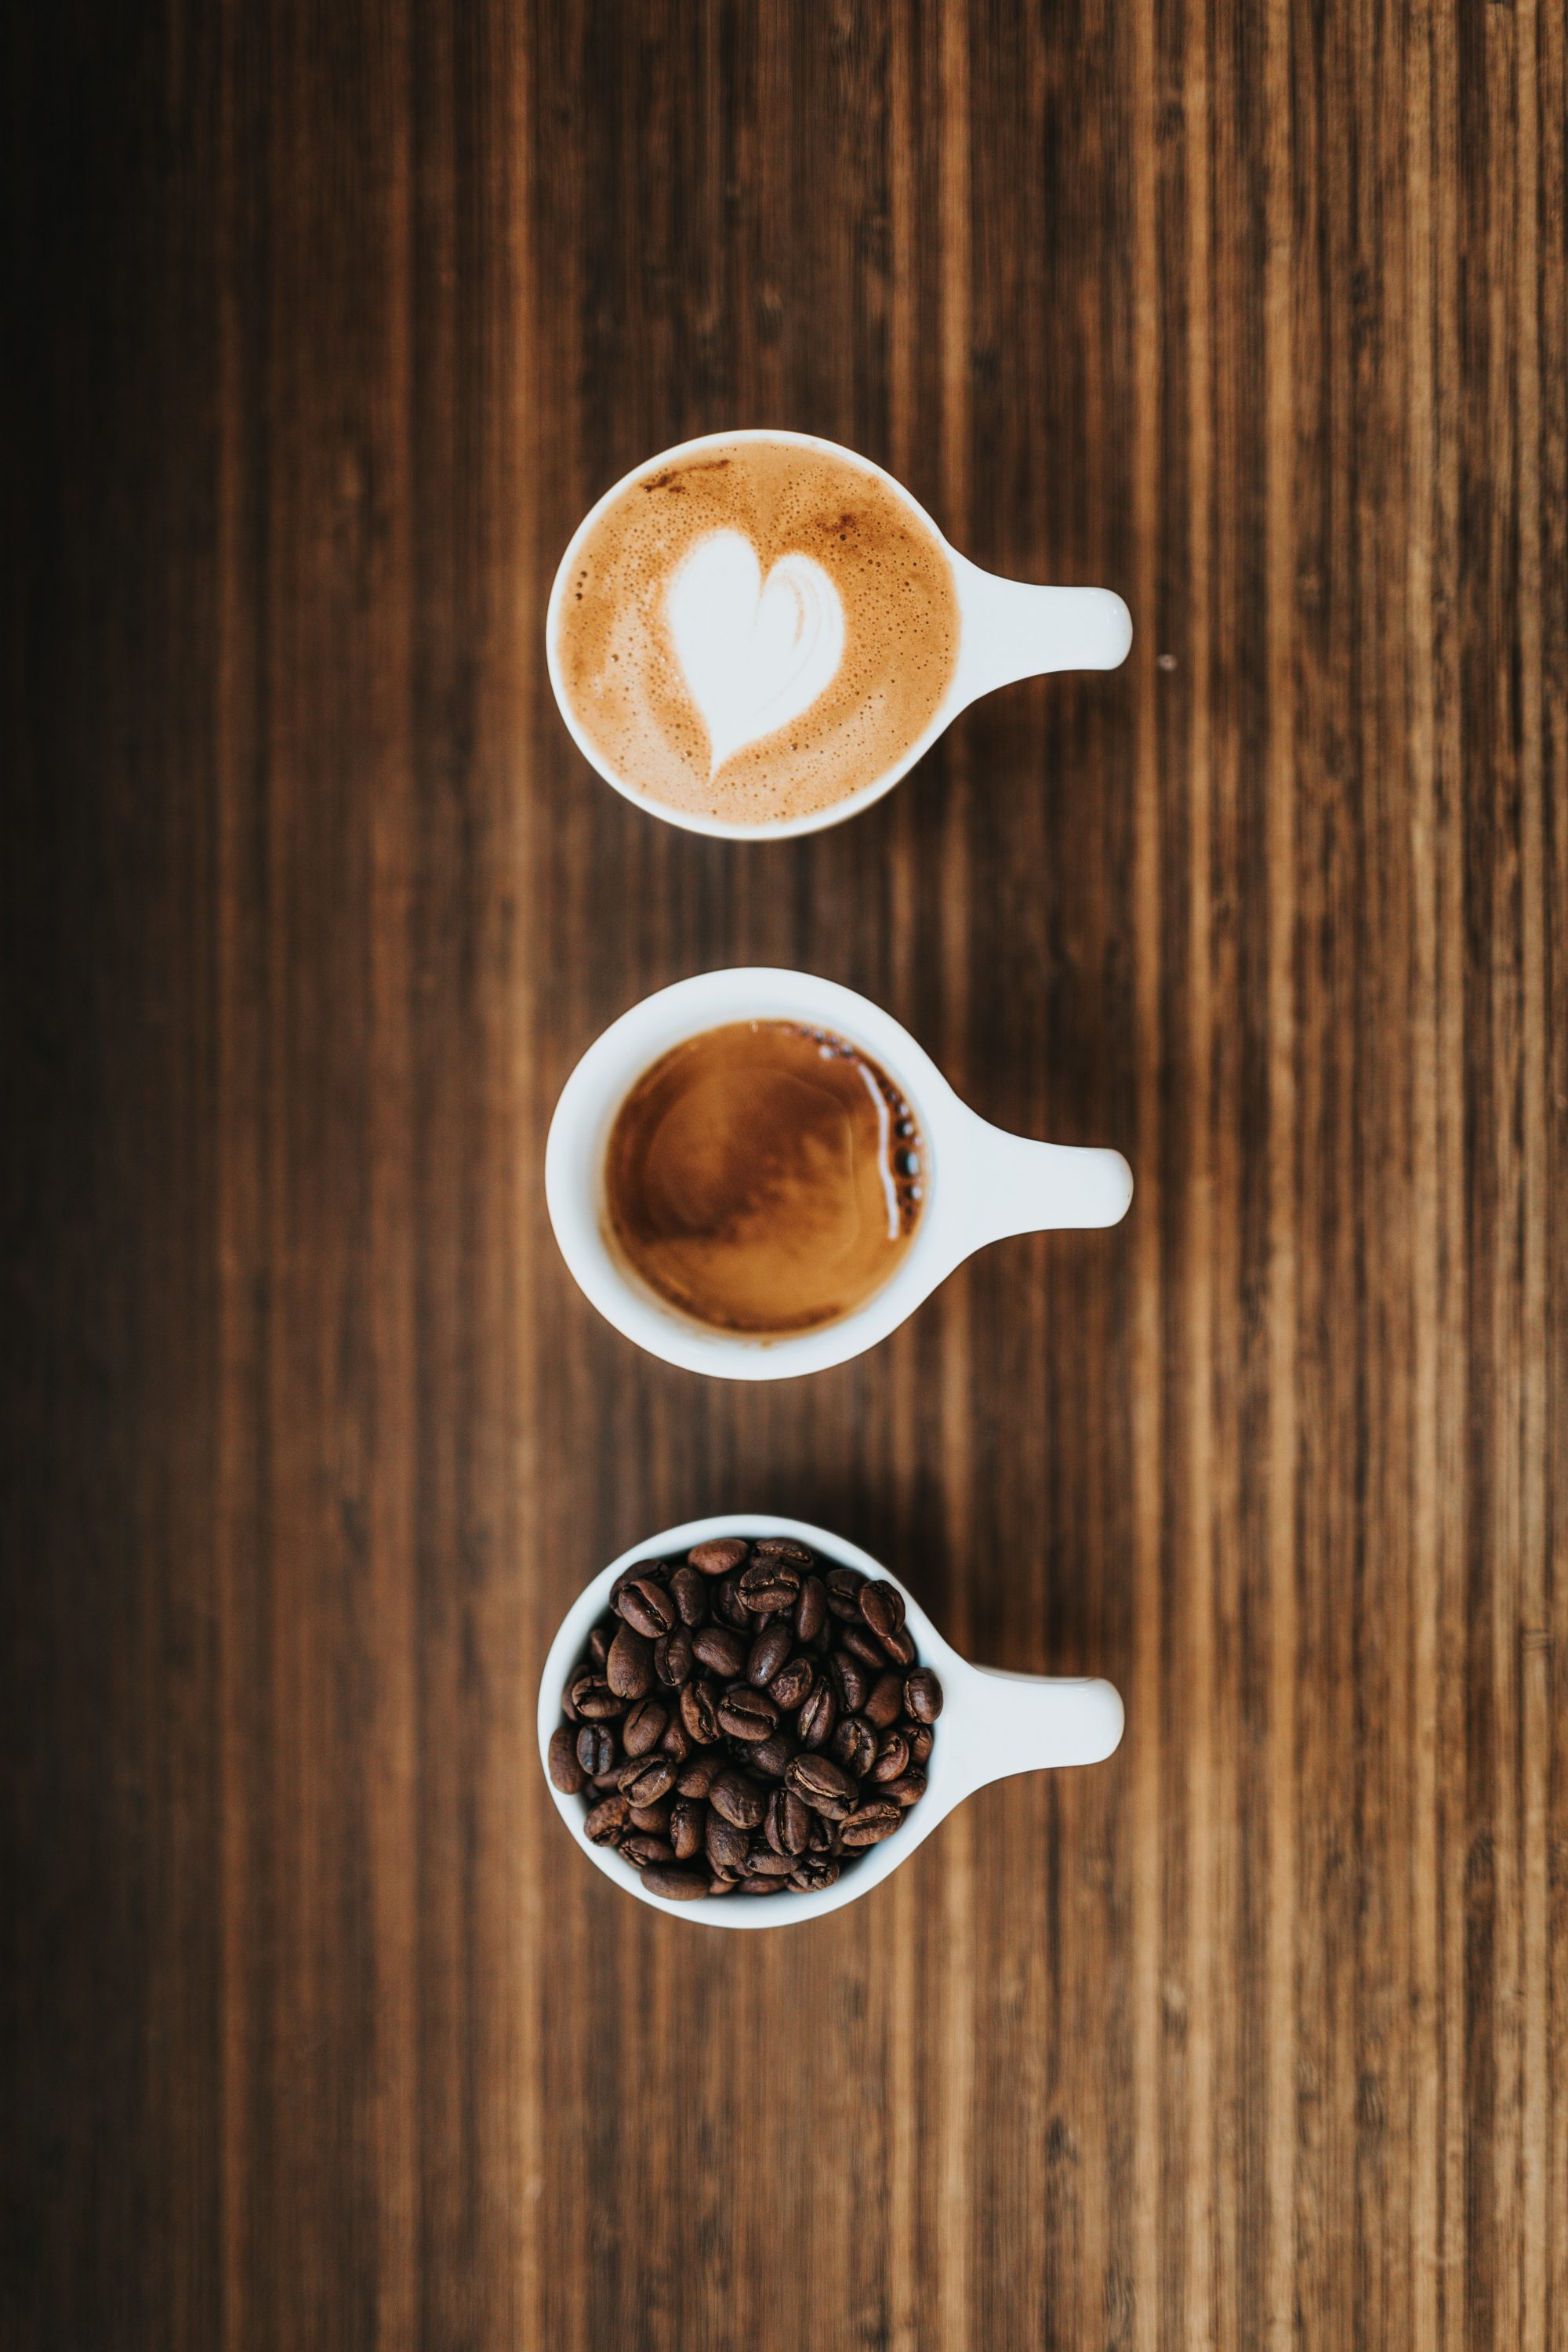 How Does Coffee Help Your Working Day? – Fupping